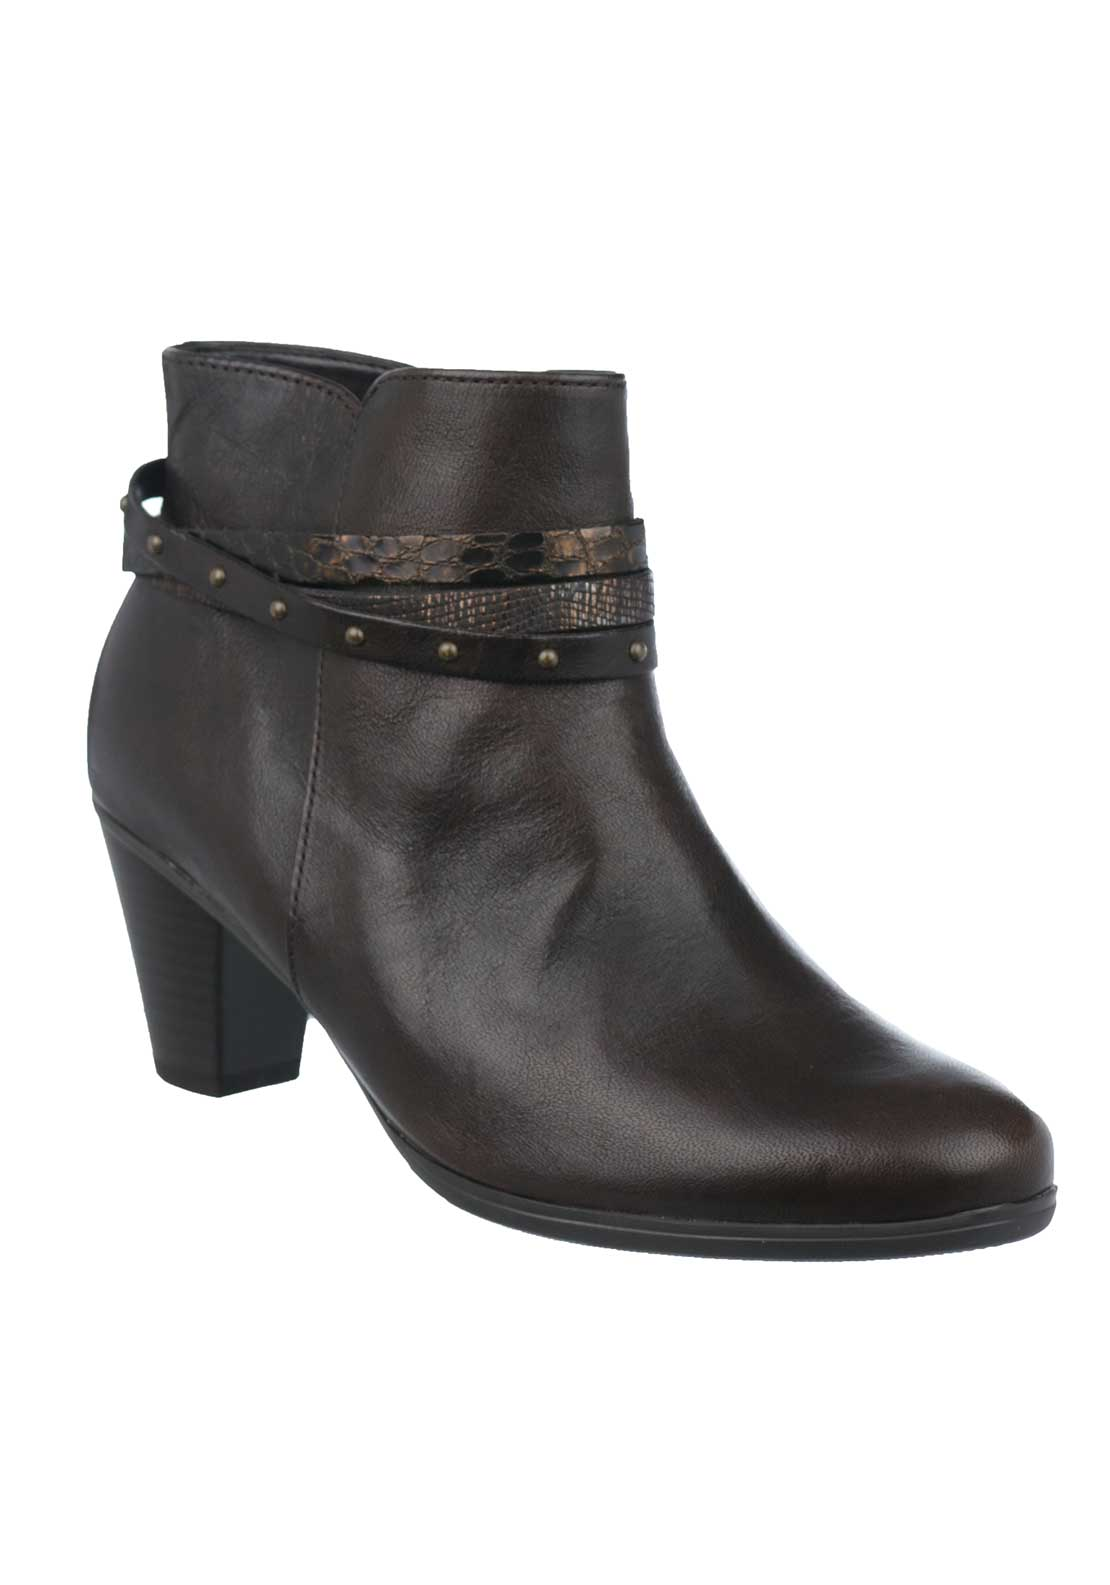 Gabor Leather Strappy Heeled Ankle Boots, Chocolate Brown